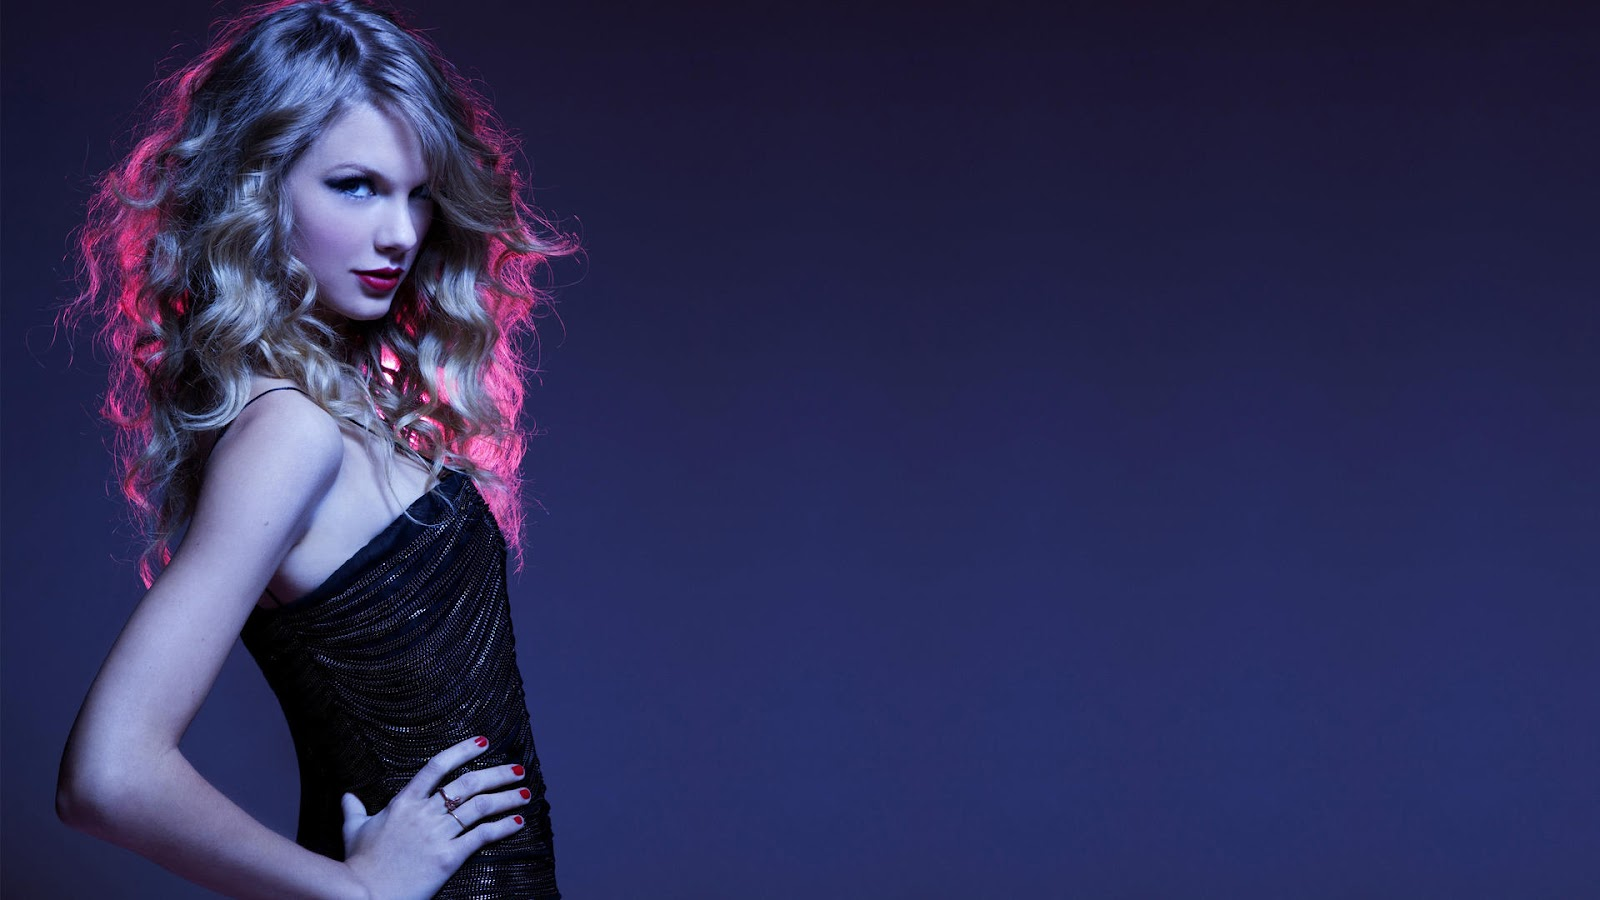 Taylor swift song download tumblr